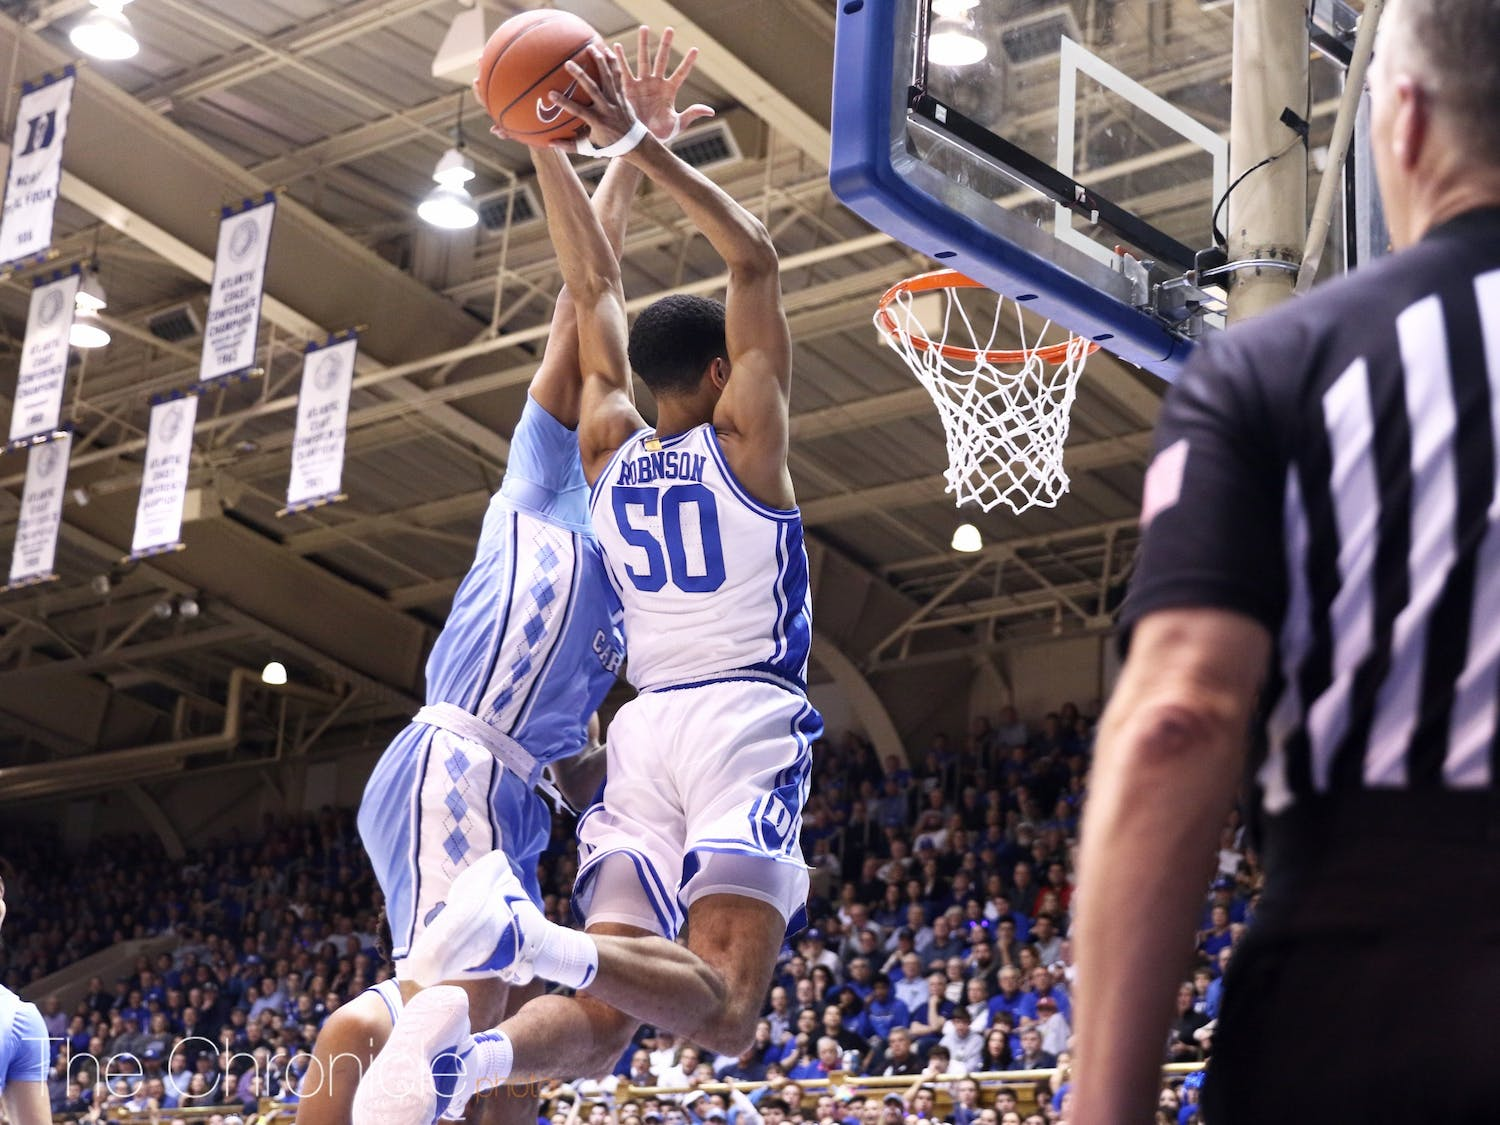 The Duke Blue Devils pull off the regular season sweep of North Carolina after beating the Tar Heels 89-76 in Cameron Indoor Stadium on 03/07/2020.  Photos of the game were taken by Charles York and Eric Wei